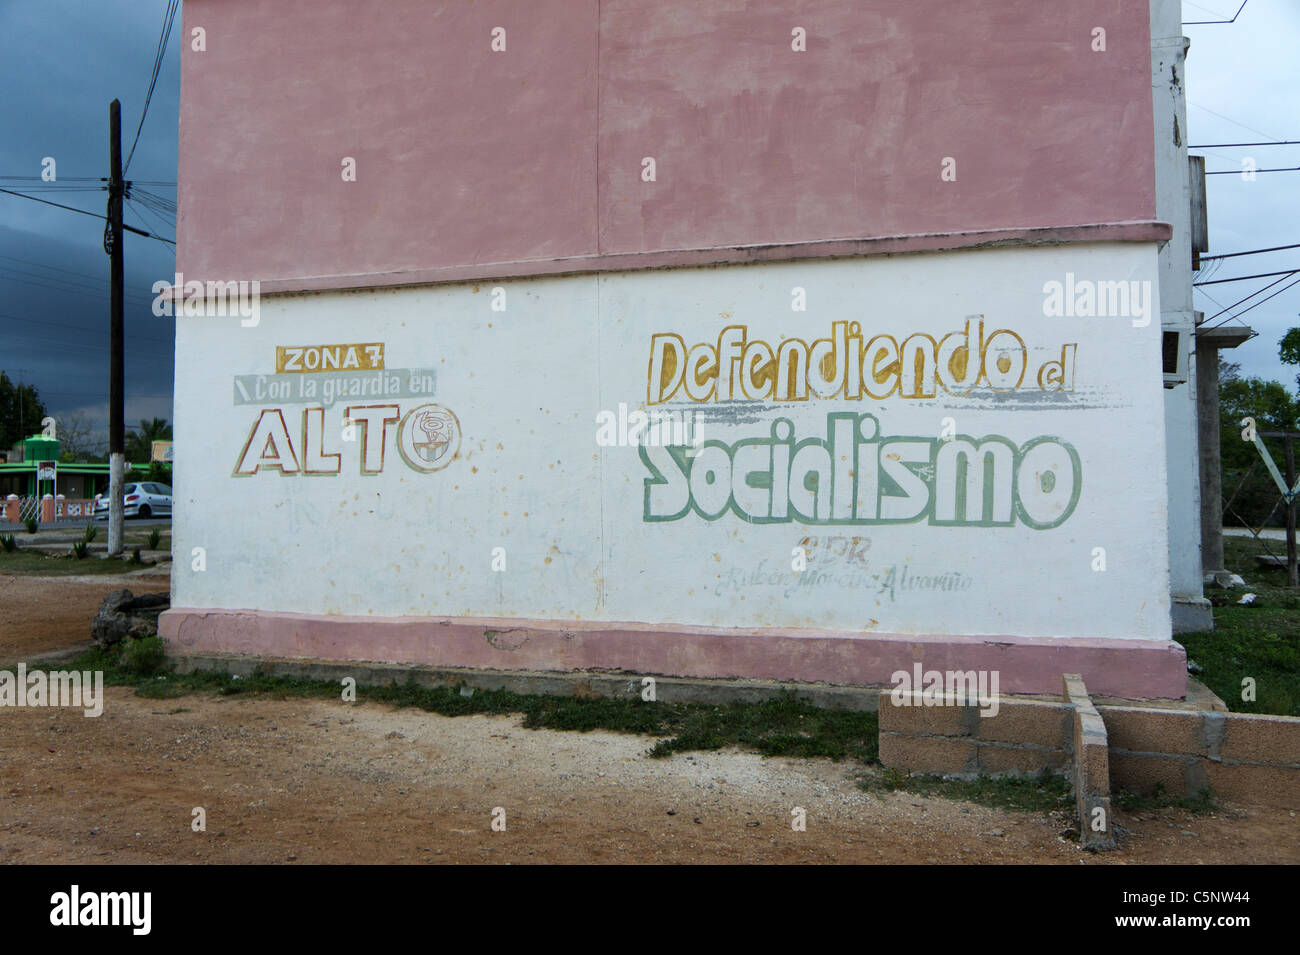 Apartment building CDR (Committees for the Defense of the Revolution) sign, Playa Giron, Cuba - Stock Image